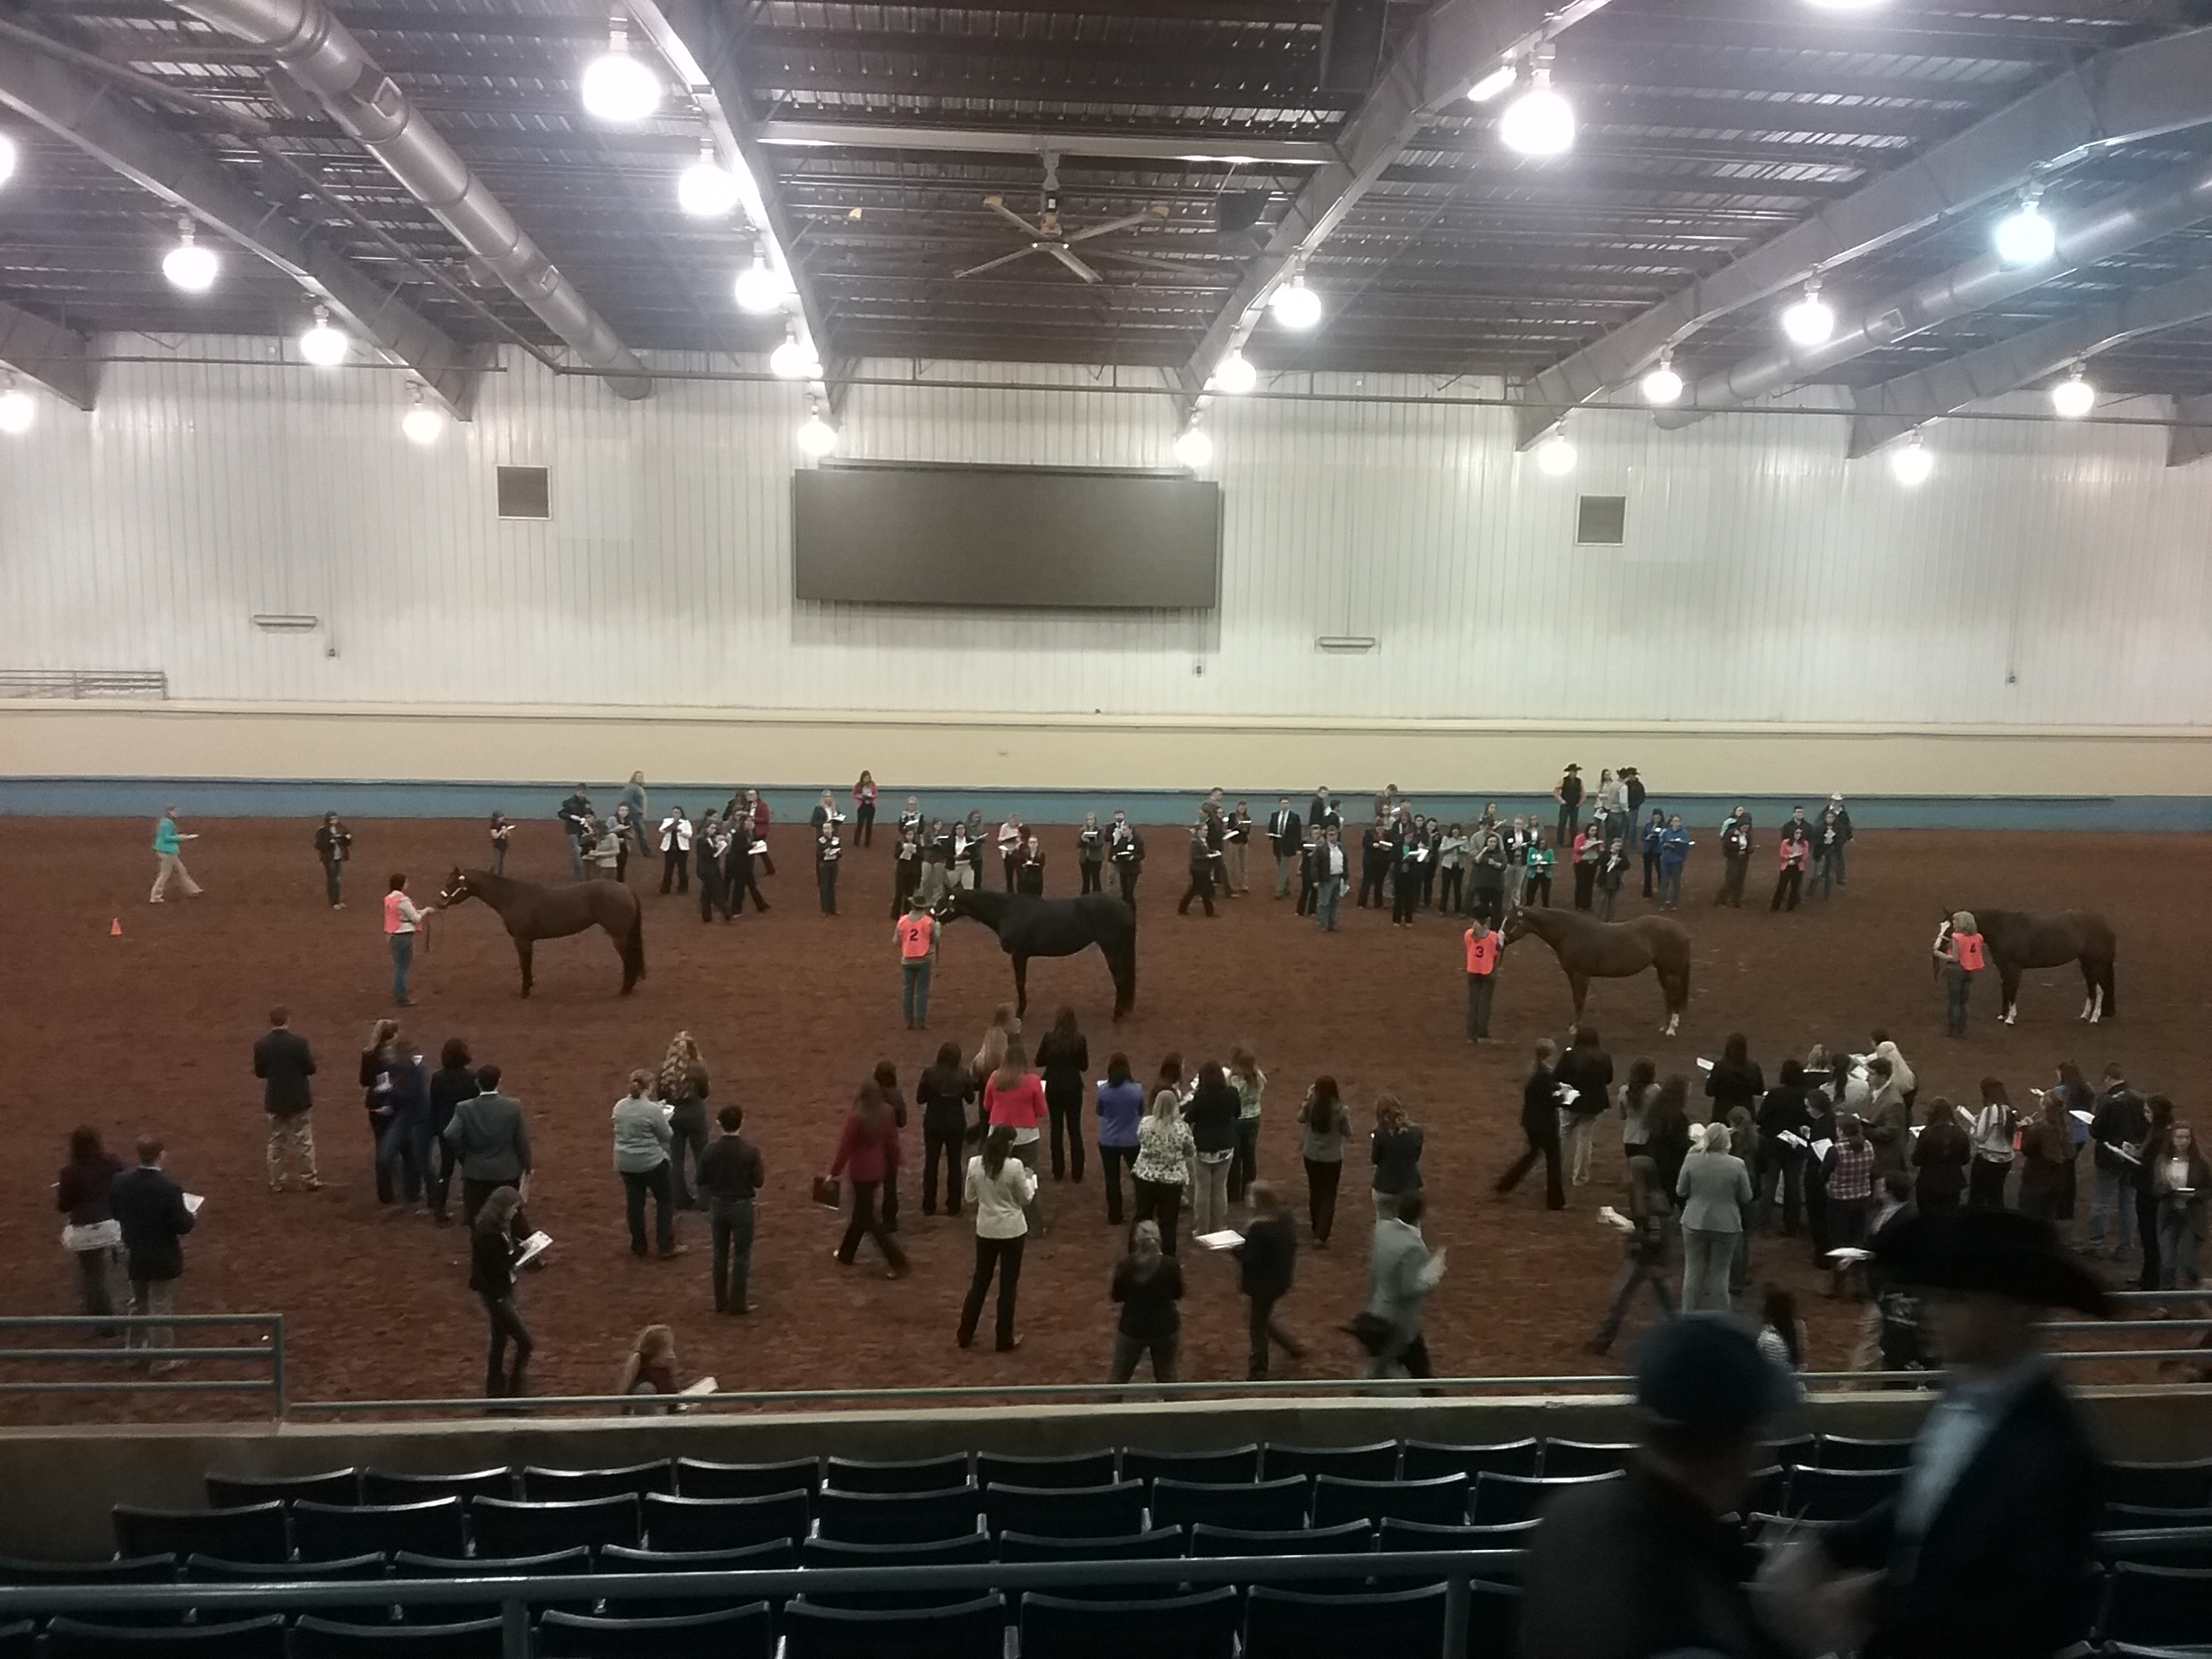 4 contestants in arena standing with their horses during judging.